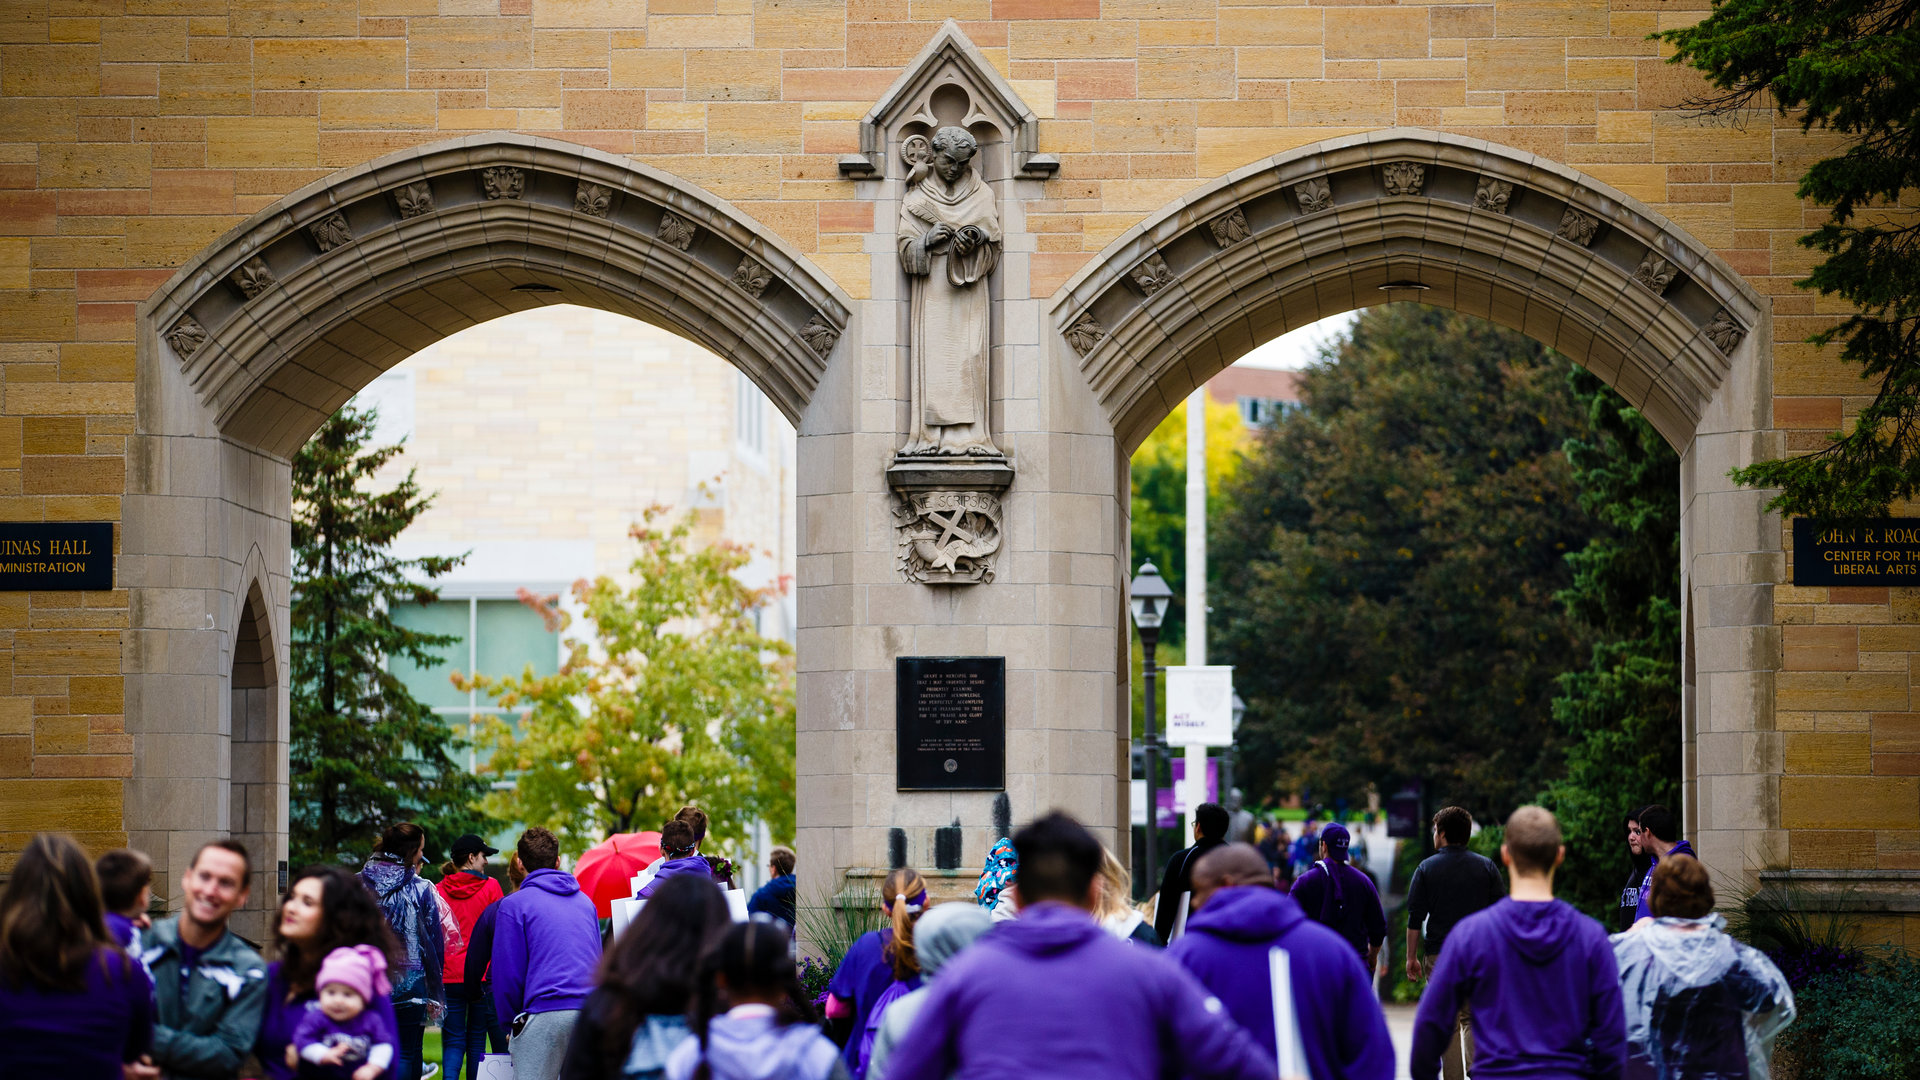 The infamous St. Thomas arches during a sunny day on campus.